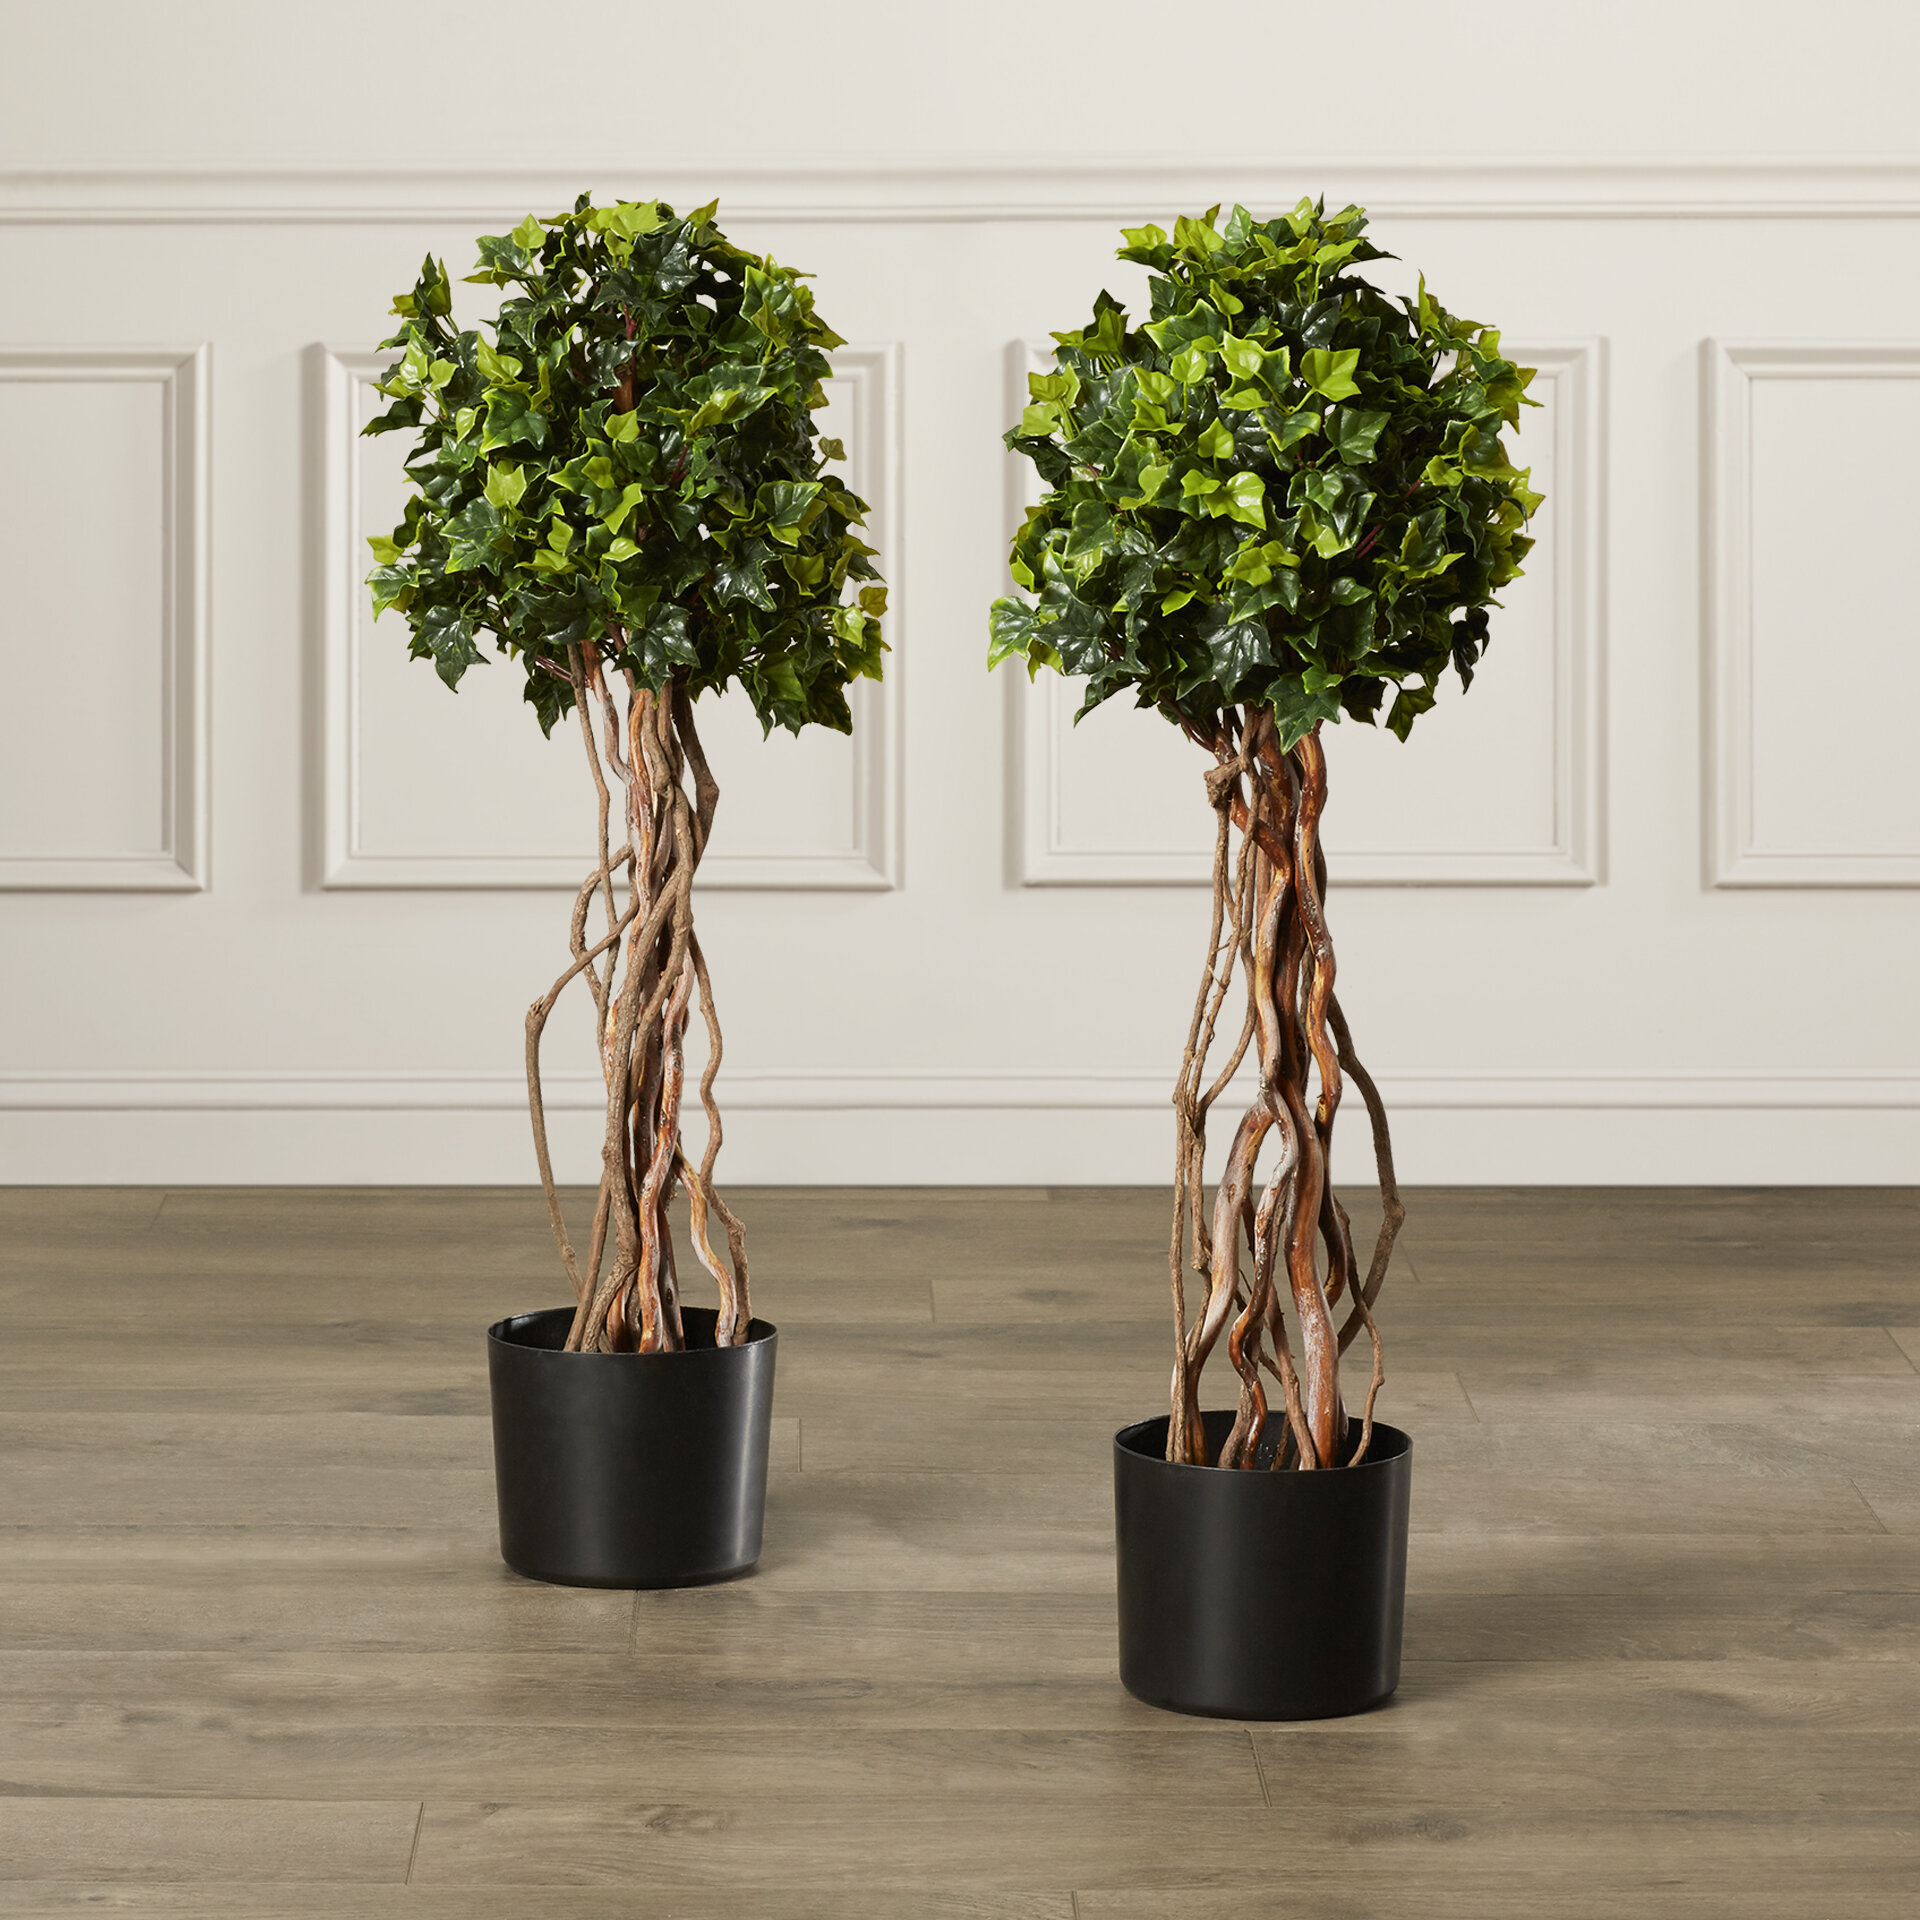 Darby Home Co Artificial English Ivy Topiary Tree In Pot Liner Liner Reviews Wayfair